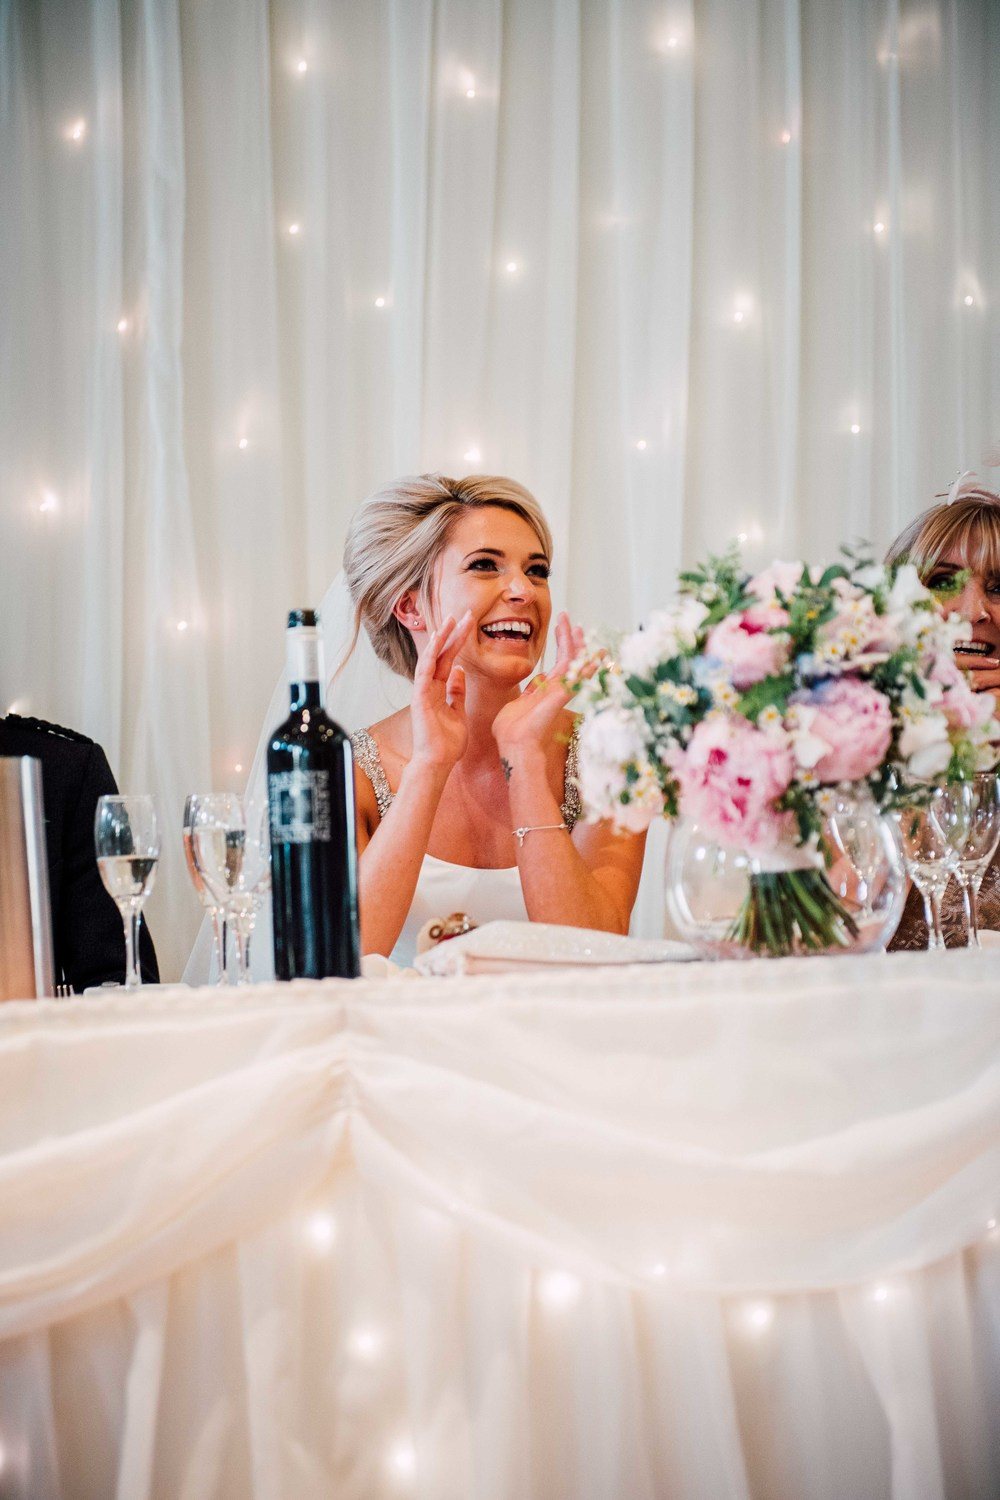 Dumfries-Wedding-Tom-Cairns-Photography-Easterbrook-Hall-Blush-Pink-Wedding-Details 58